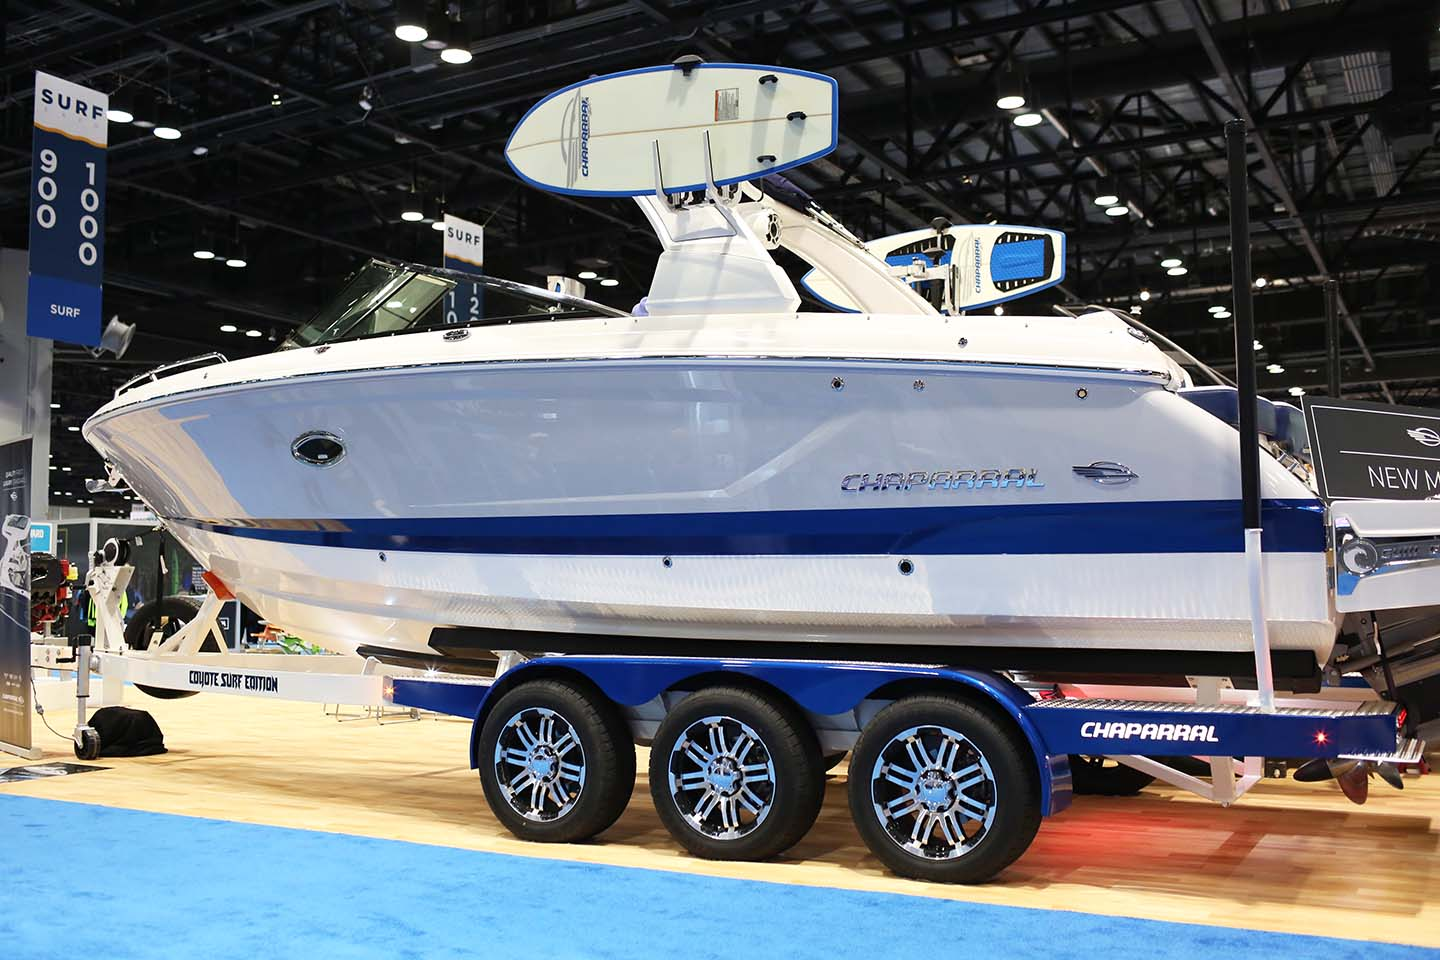 Surf Expo Chaparral Boats 2019 Alliance Wakeboard